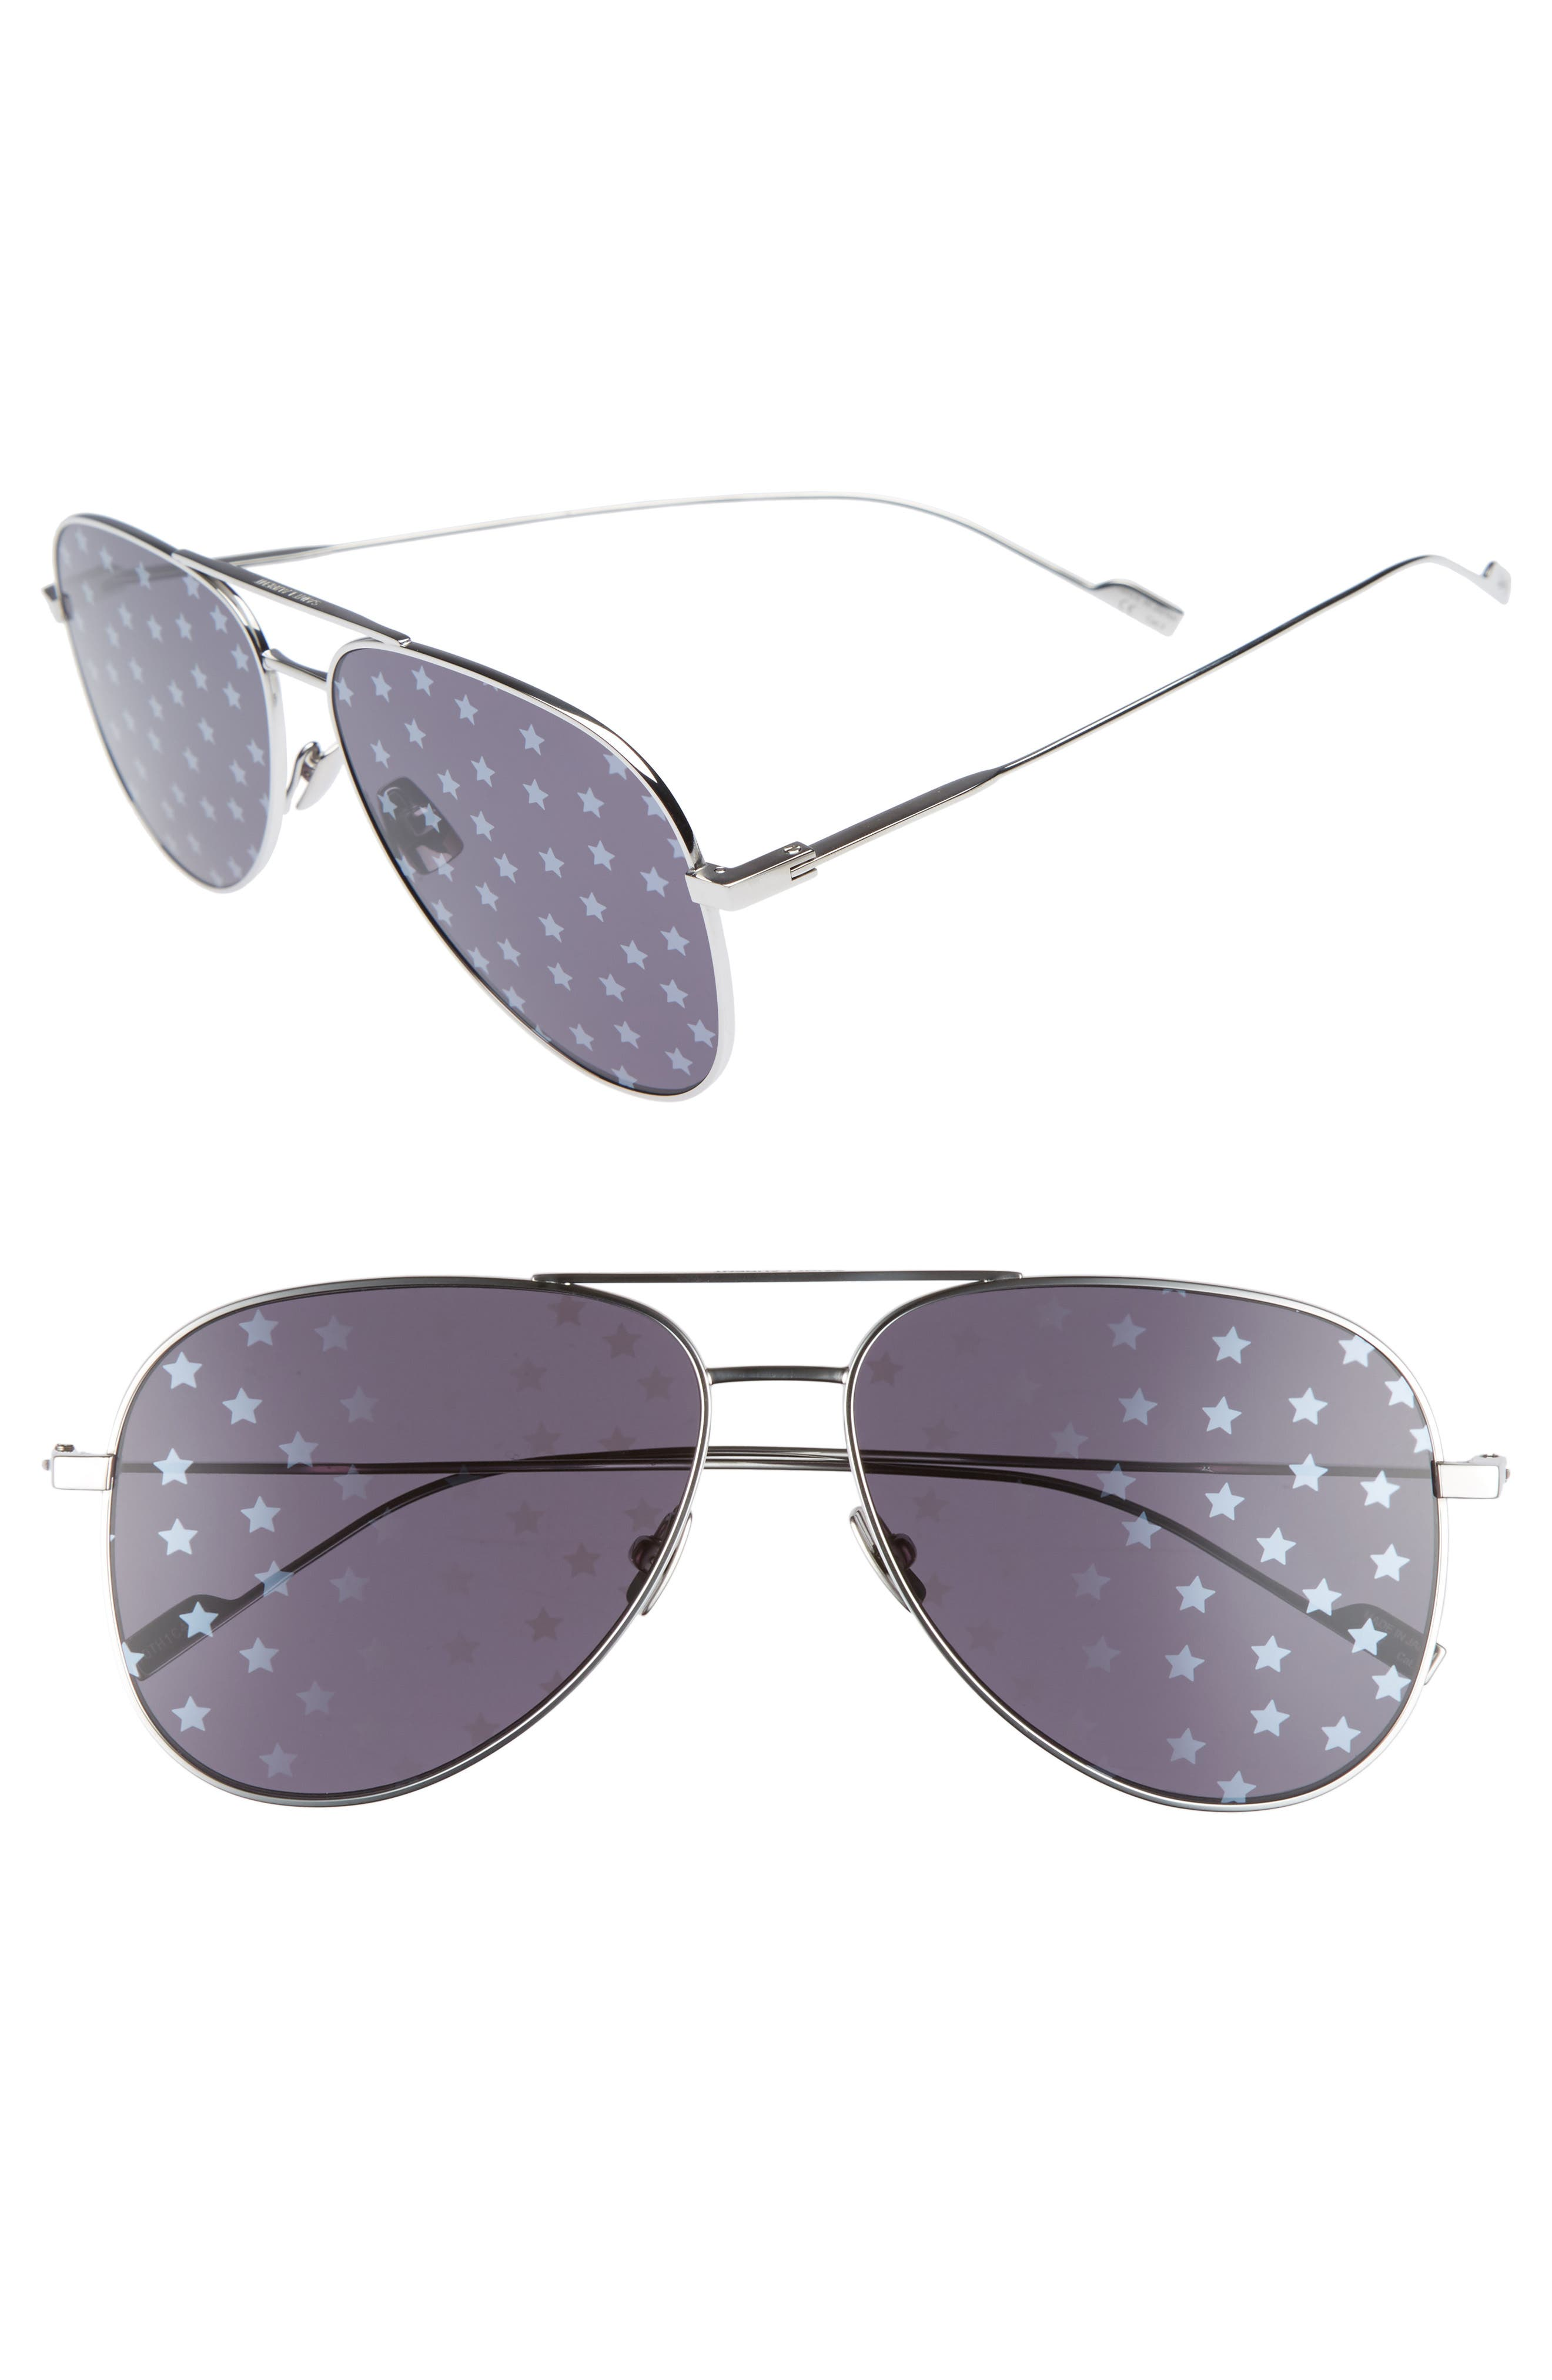 SL193 59mm Aviator Sunglasses,                             Main thumbnail 1, color,